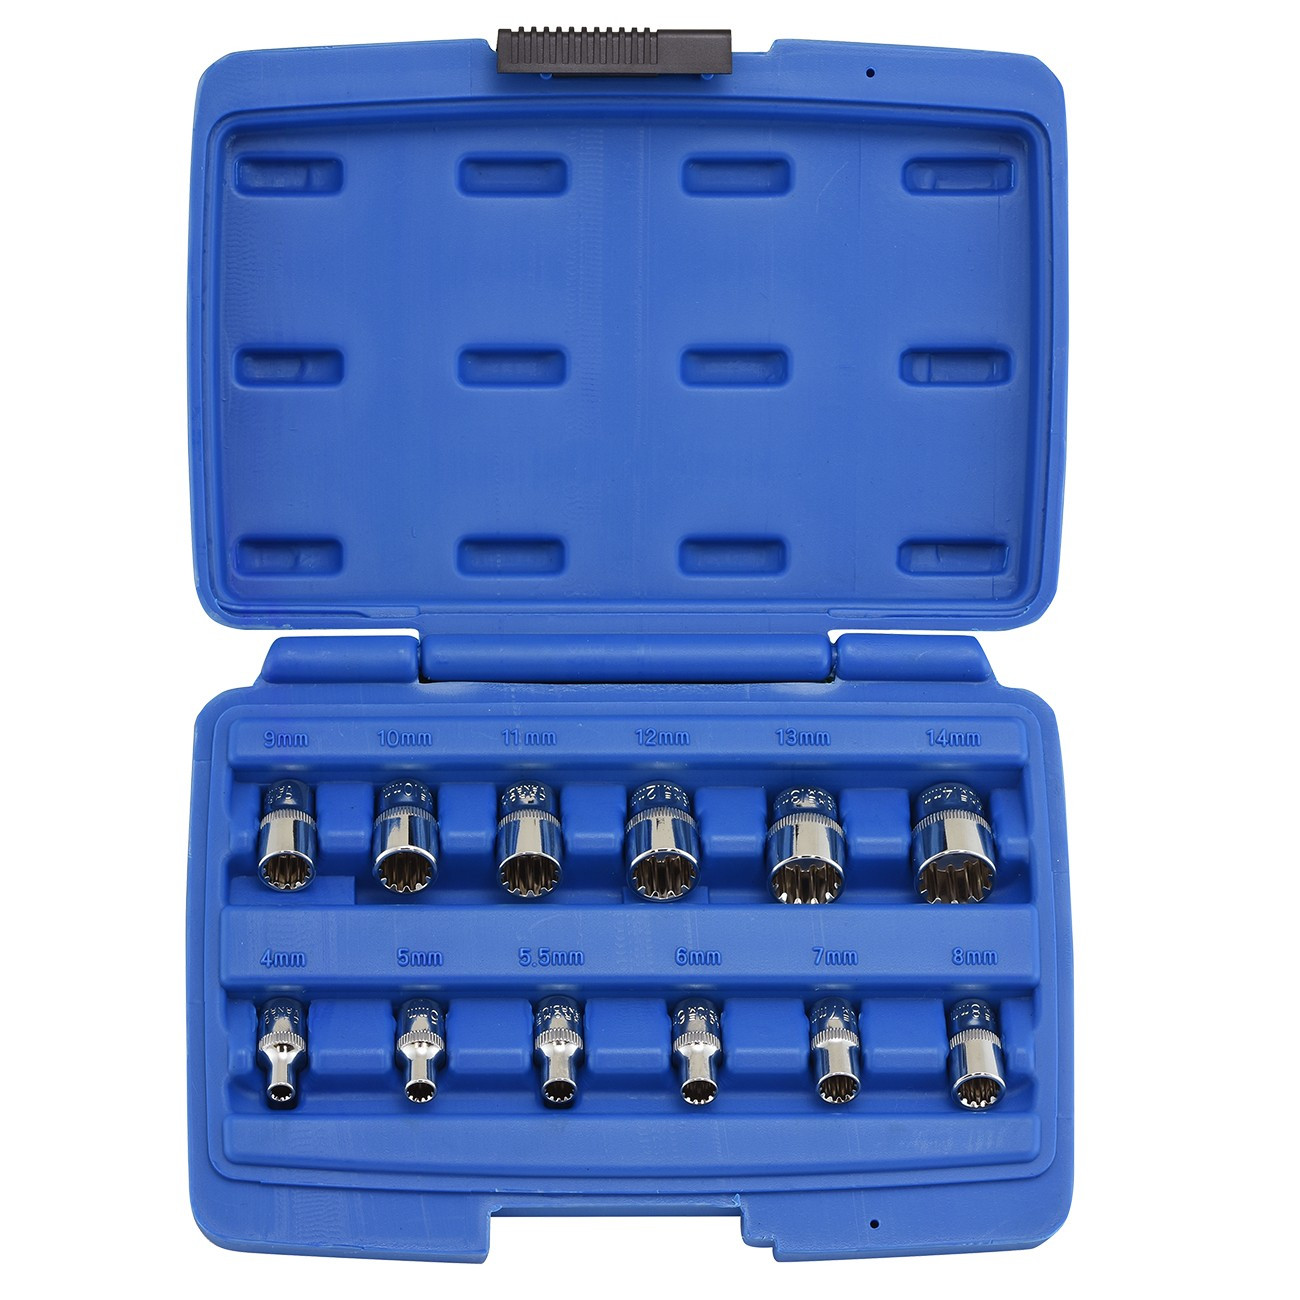 "1/2"" Drive Socket Wrench Set for Rounded Damaged Bolts Nuts"